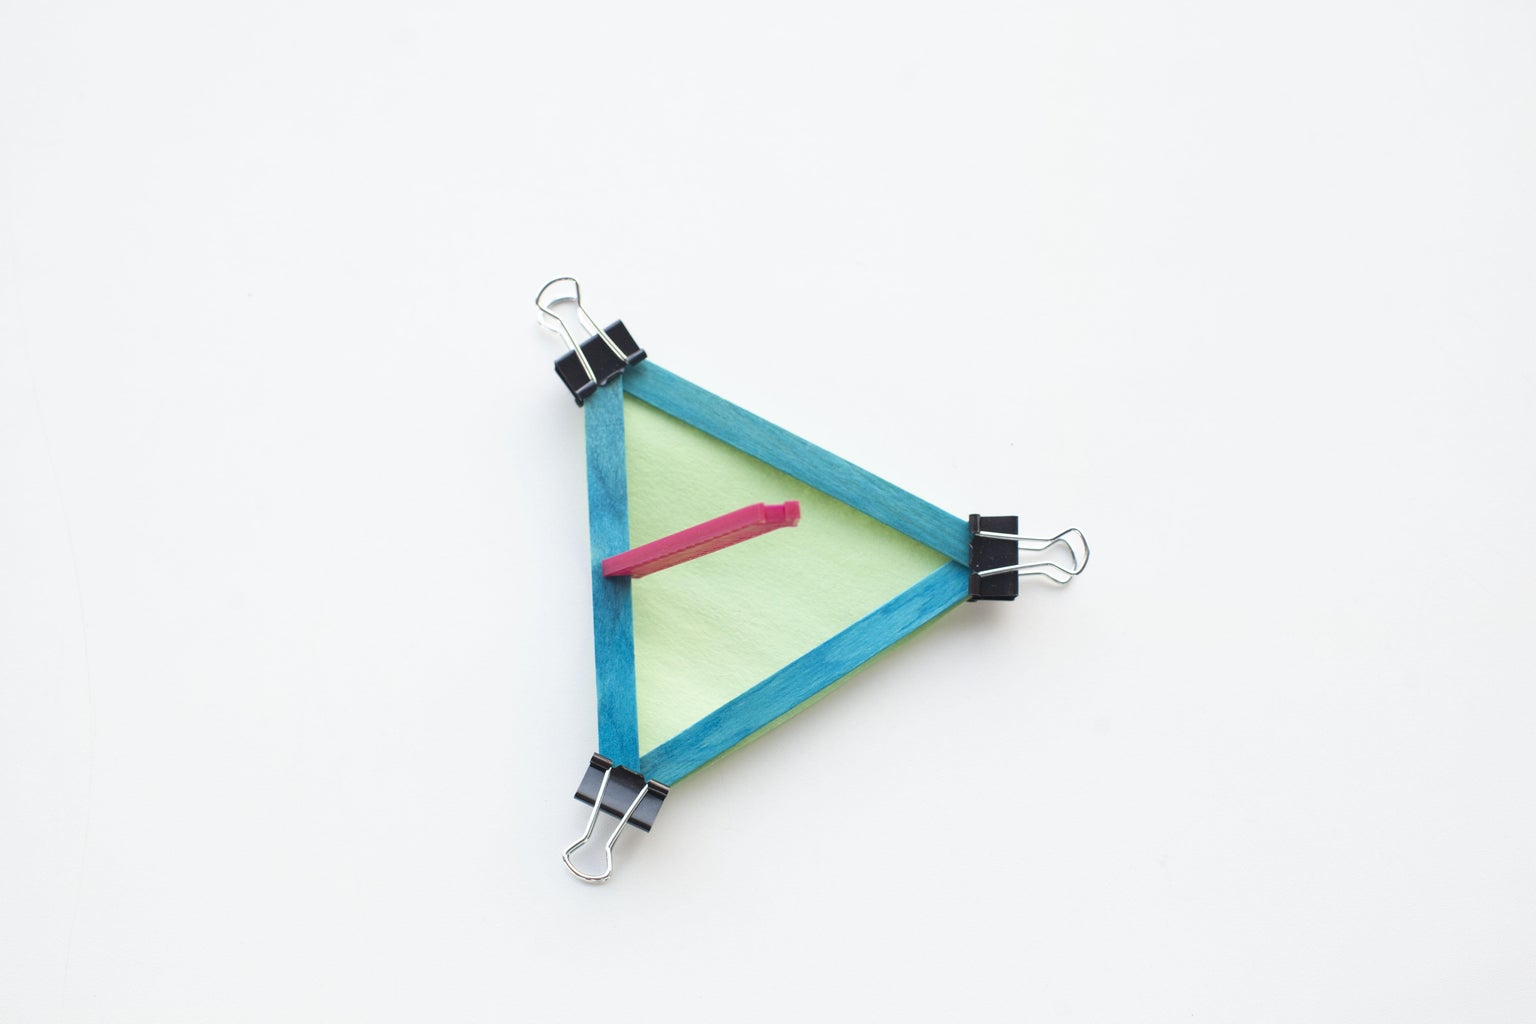 Add Binder Clips to Each Triangle